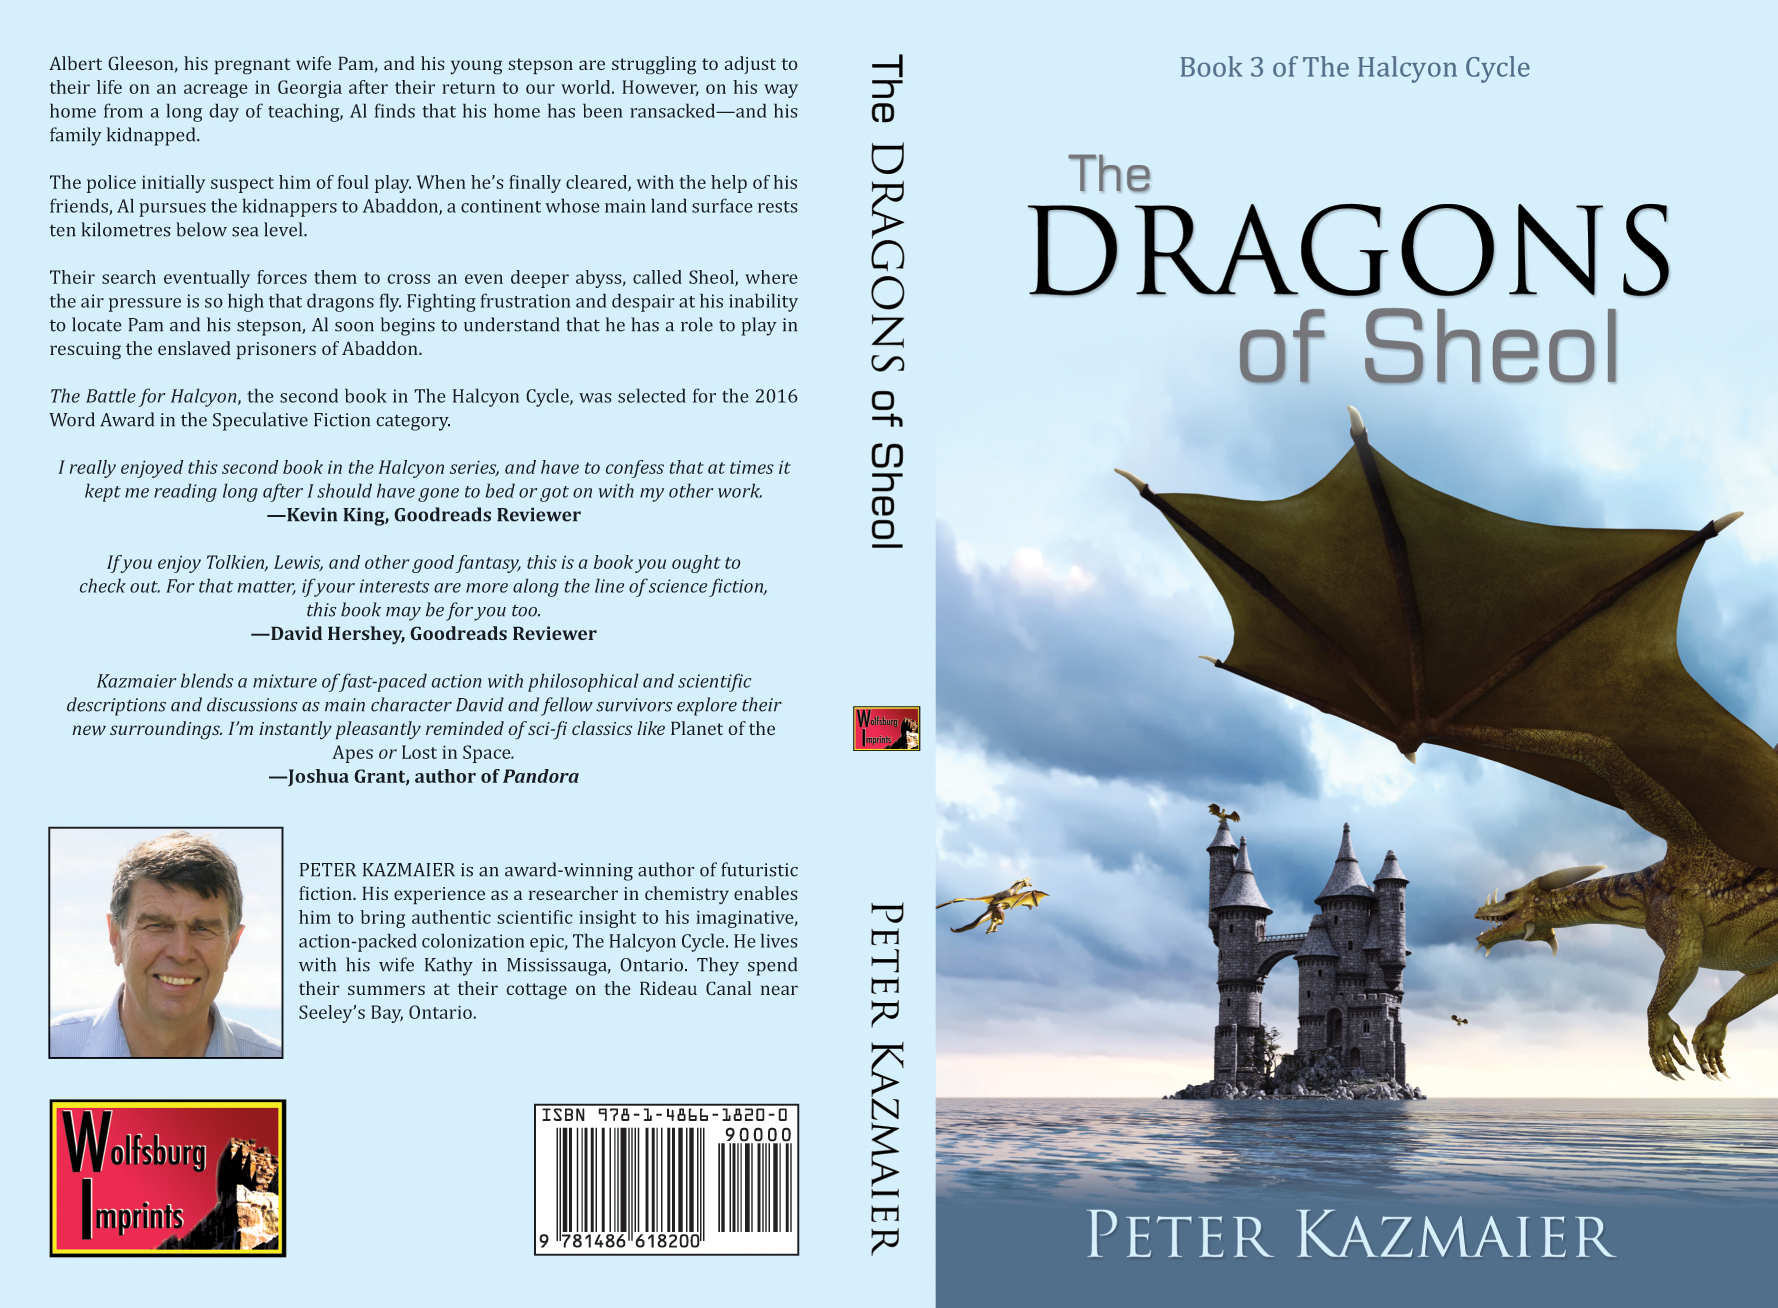 For those who can't see the image: the front and back cover of The Dragons of Sheol is shown. The back cover provides a brief description of the book, quotes on The battle for Halcyon by reviewers and a brief description of the author.